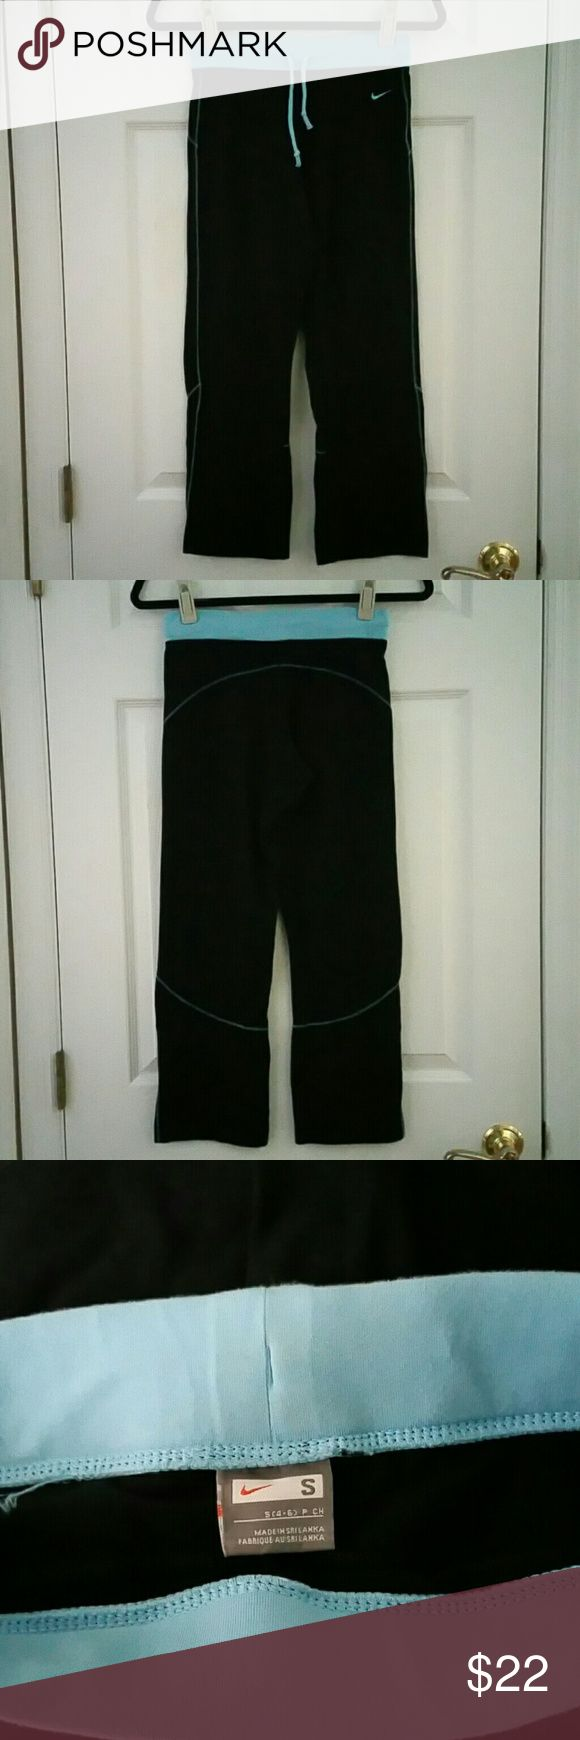 COMFY NIKE ATHLETIC/YOGA CROPS/CAPRI PANTS SM EUC! NIKE CUTE ATHLETIC CAPRI PANTS! LT BLUE WAIST w/DRAWSTRING, STRECHY, BLACK BOTTOMS w/LT BLUE STICHING ACCENTS AROUND PANTS!   SIZE: SMALL   EUC! Excellent Used Condition! Worn Less Than a Handful of Times. Only teeny visible wear is on the back of the inside of the top of pants (near tag) Gently Laundered & Hung to Dry!  92% Cotton & 8% Spandex  FAST SHIPPING! Same Or Next Day Shipping!!  No Smoking, Buy It Now, Bundle Discounts Available…